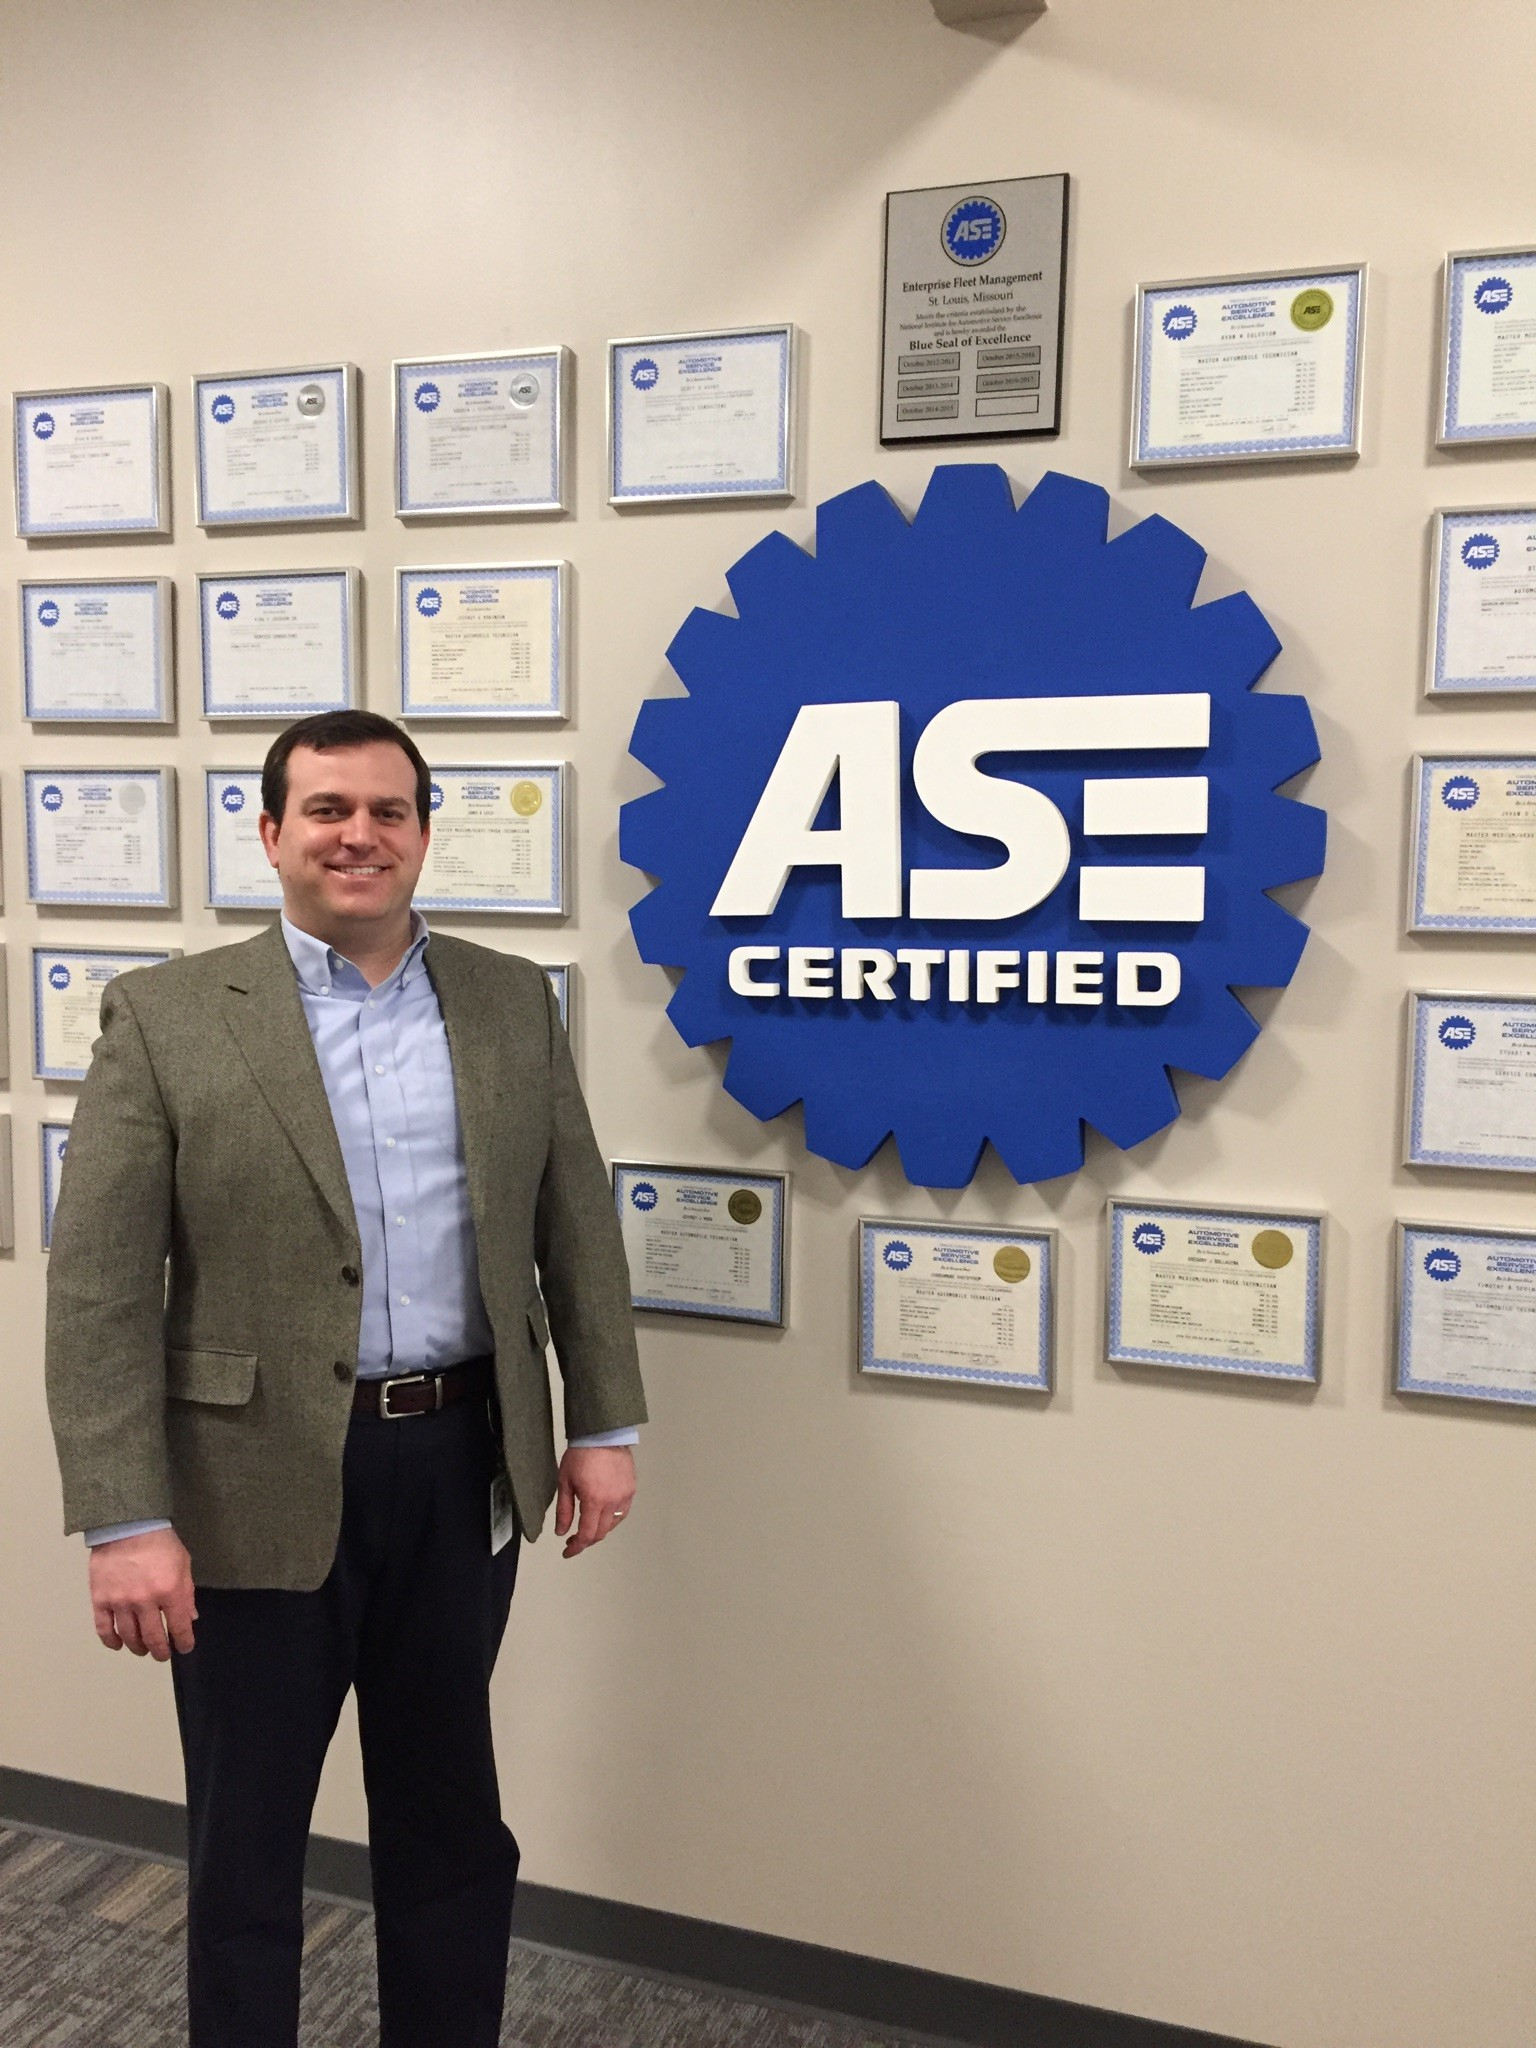 Ase Hands Out 2017 World Class Technician Award 2017 03 03